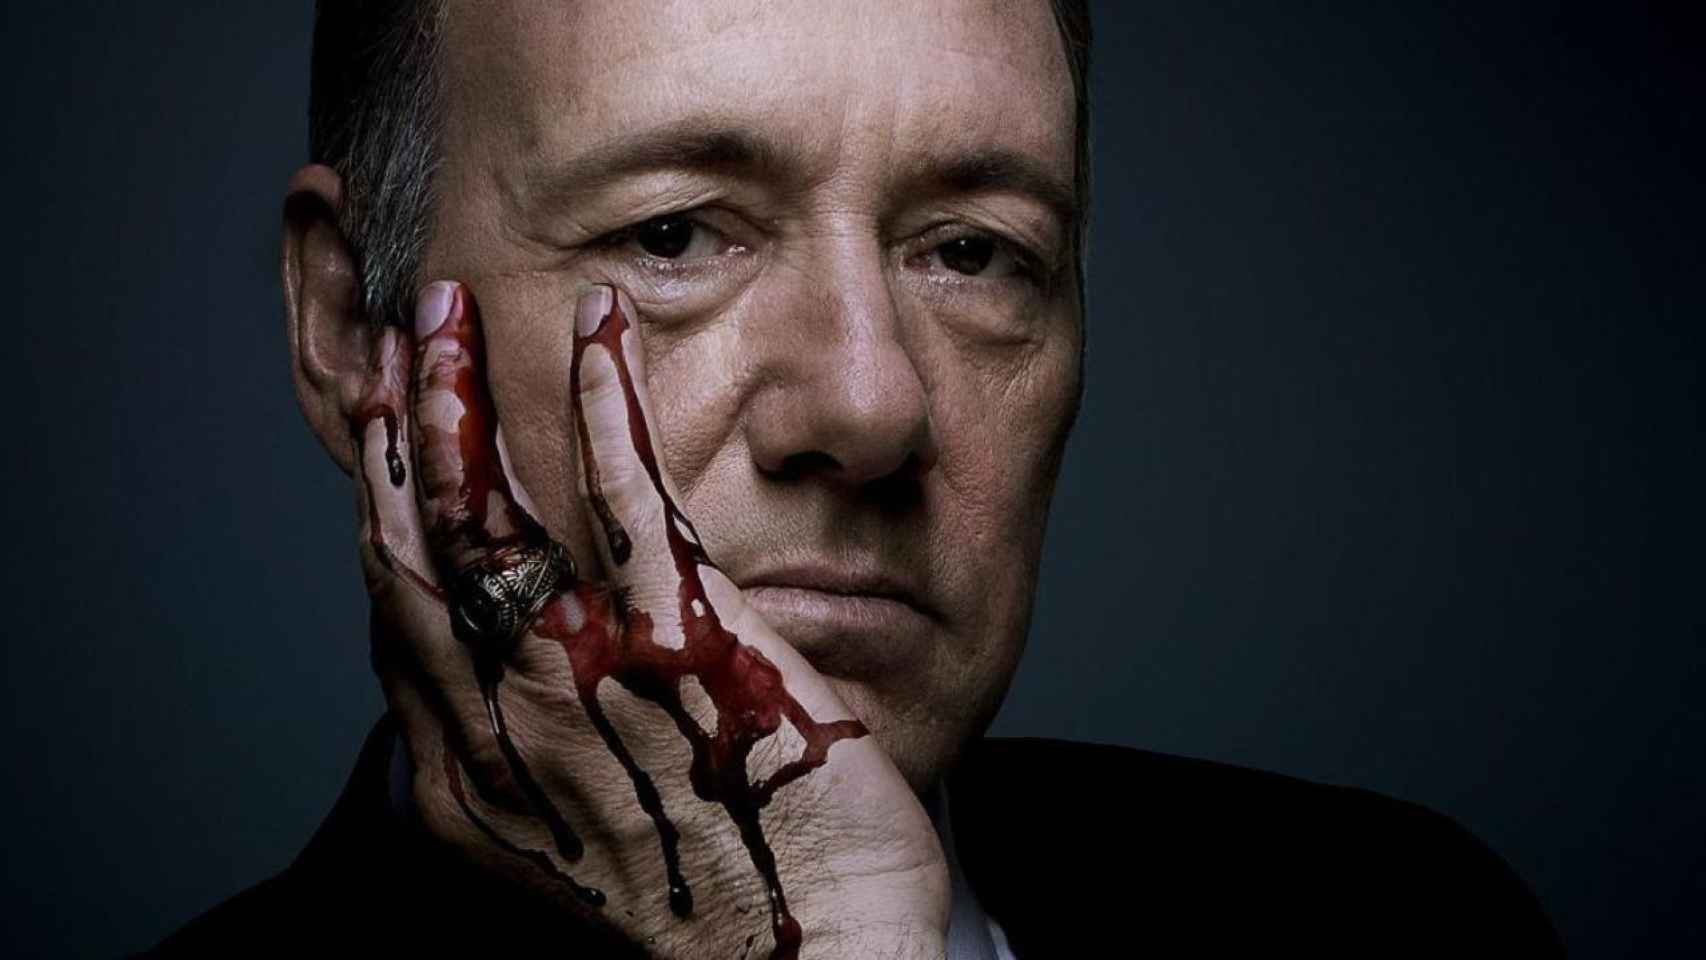 El protagonista de House of Cards, Frank Underwood.